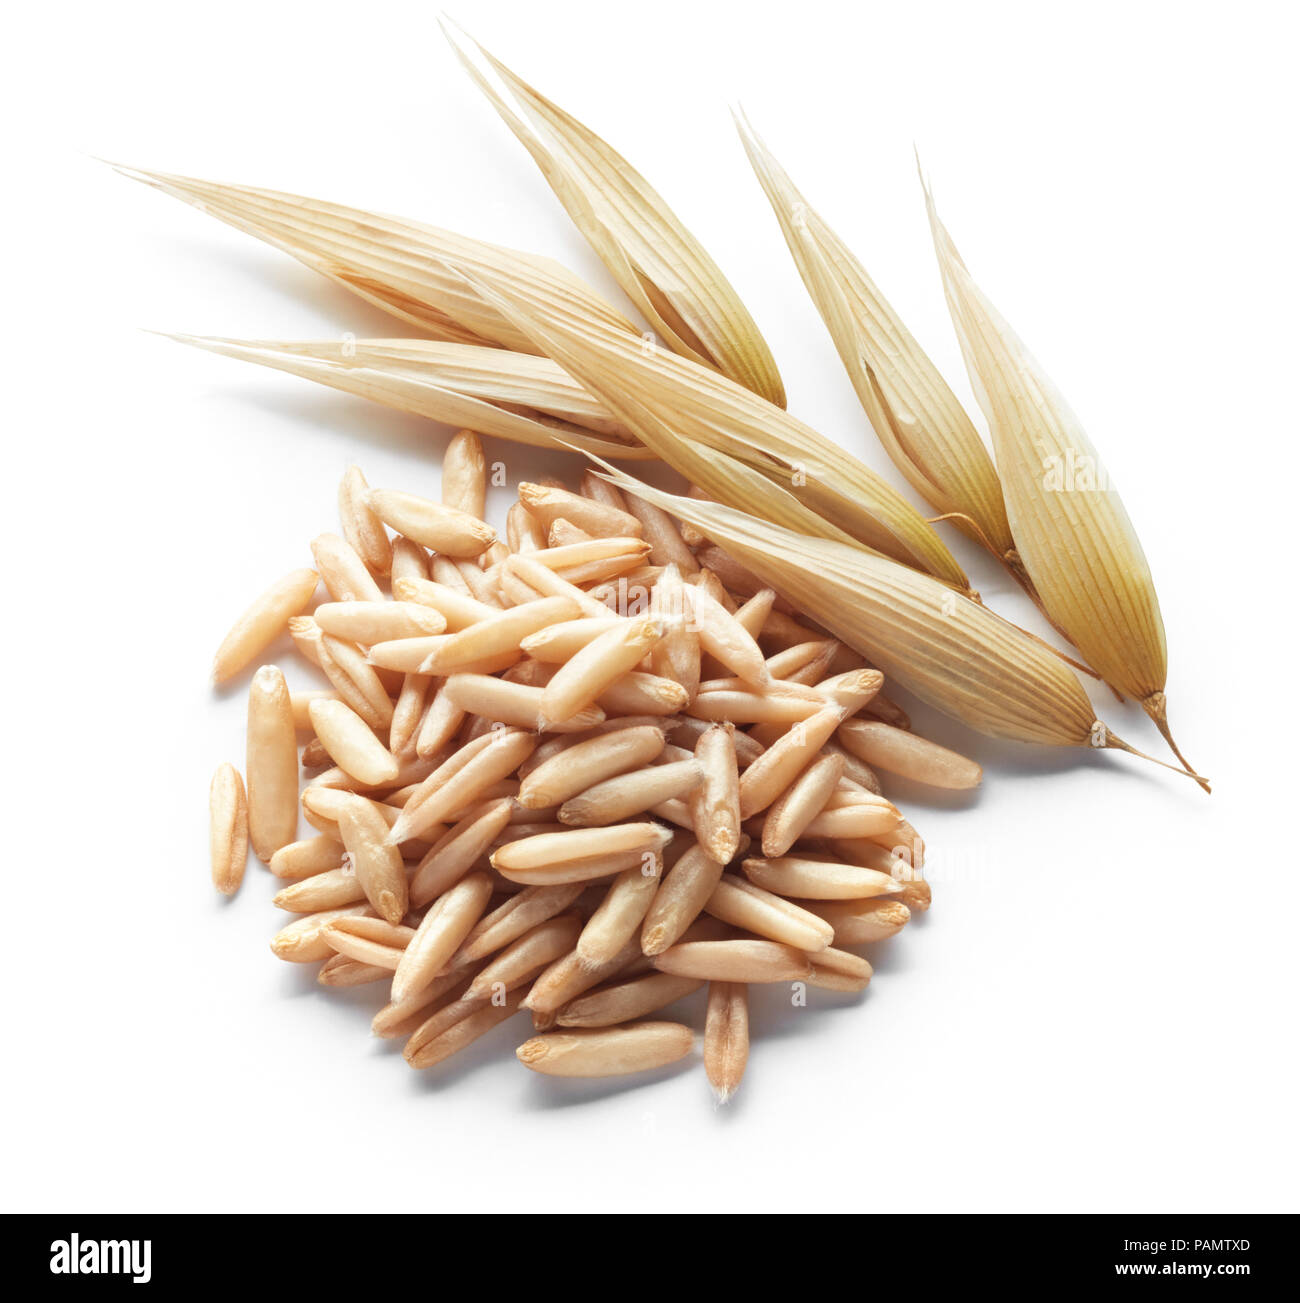 unprocessed oats and its crops isolated on white - Stock Image